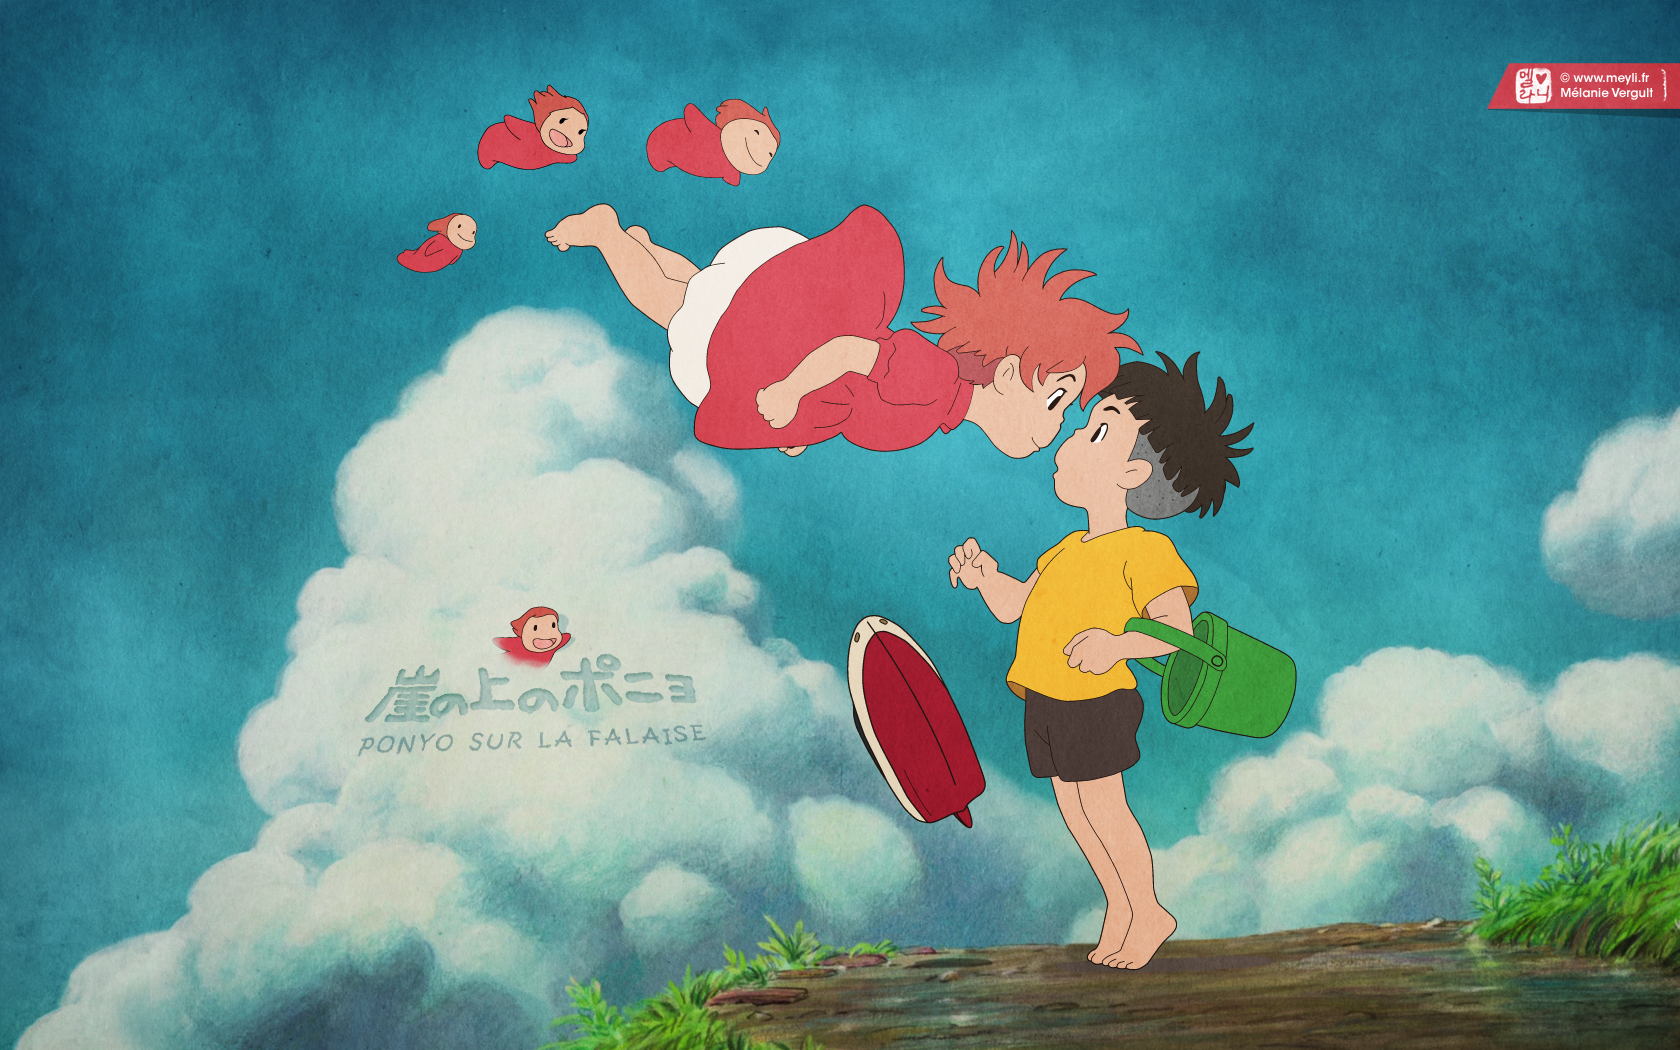 Ponyo -1680x1050-